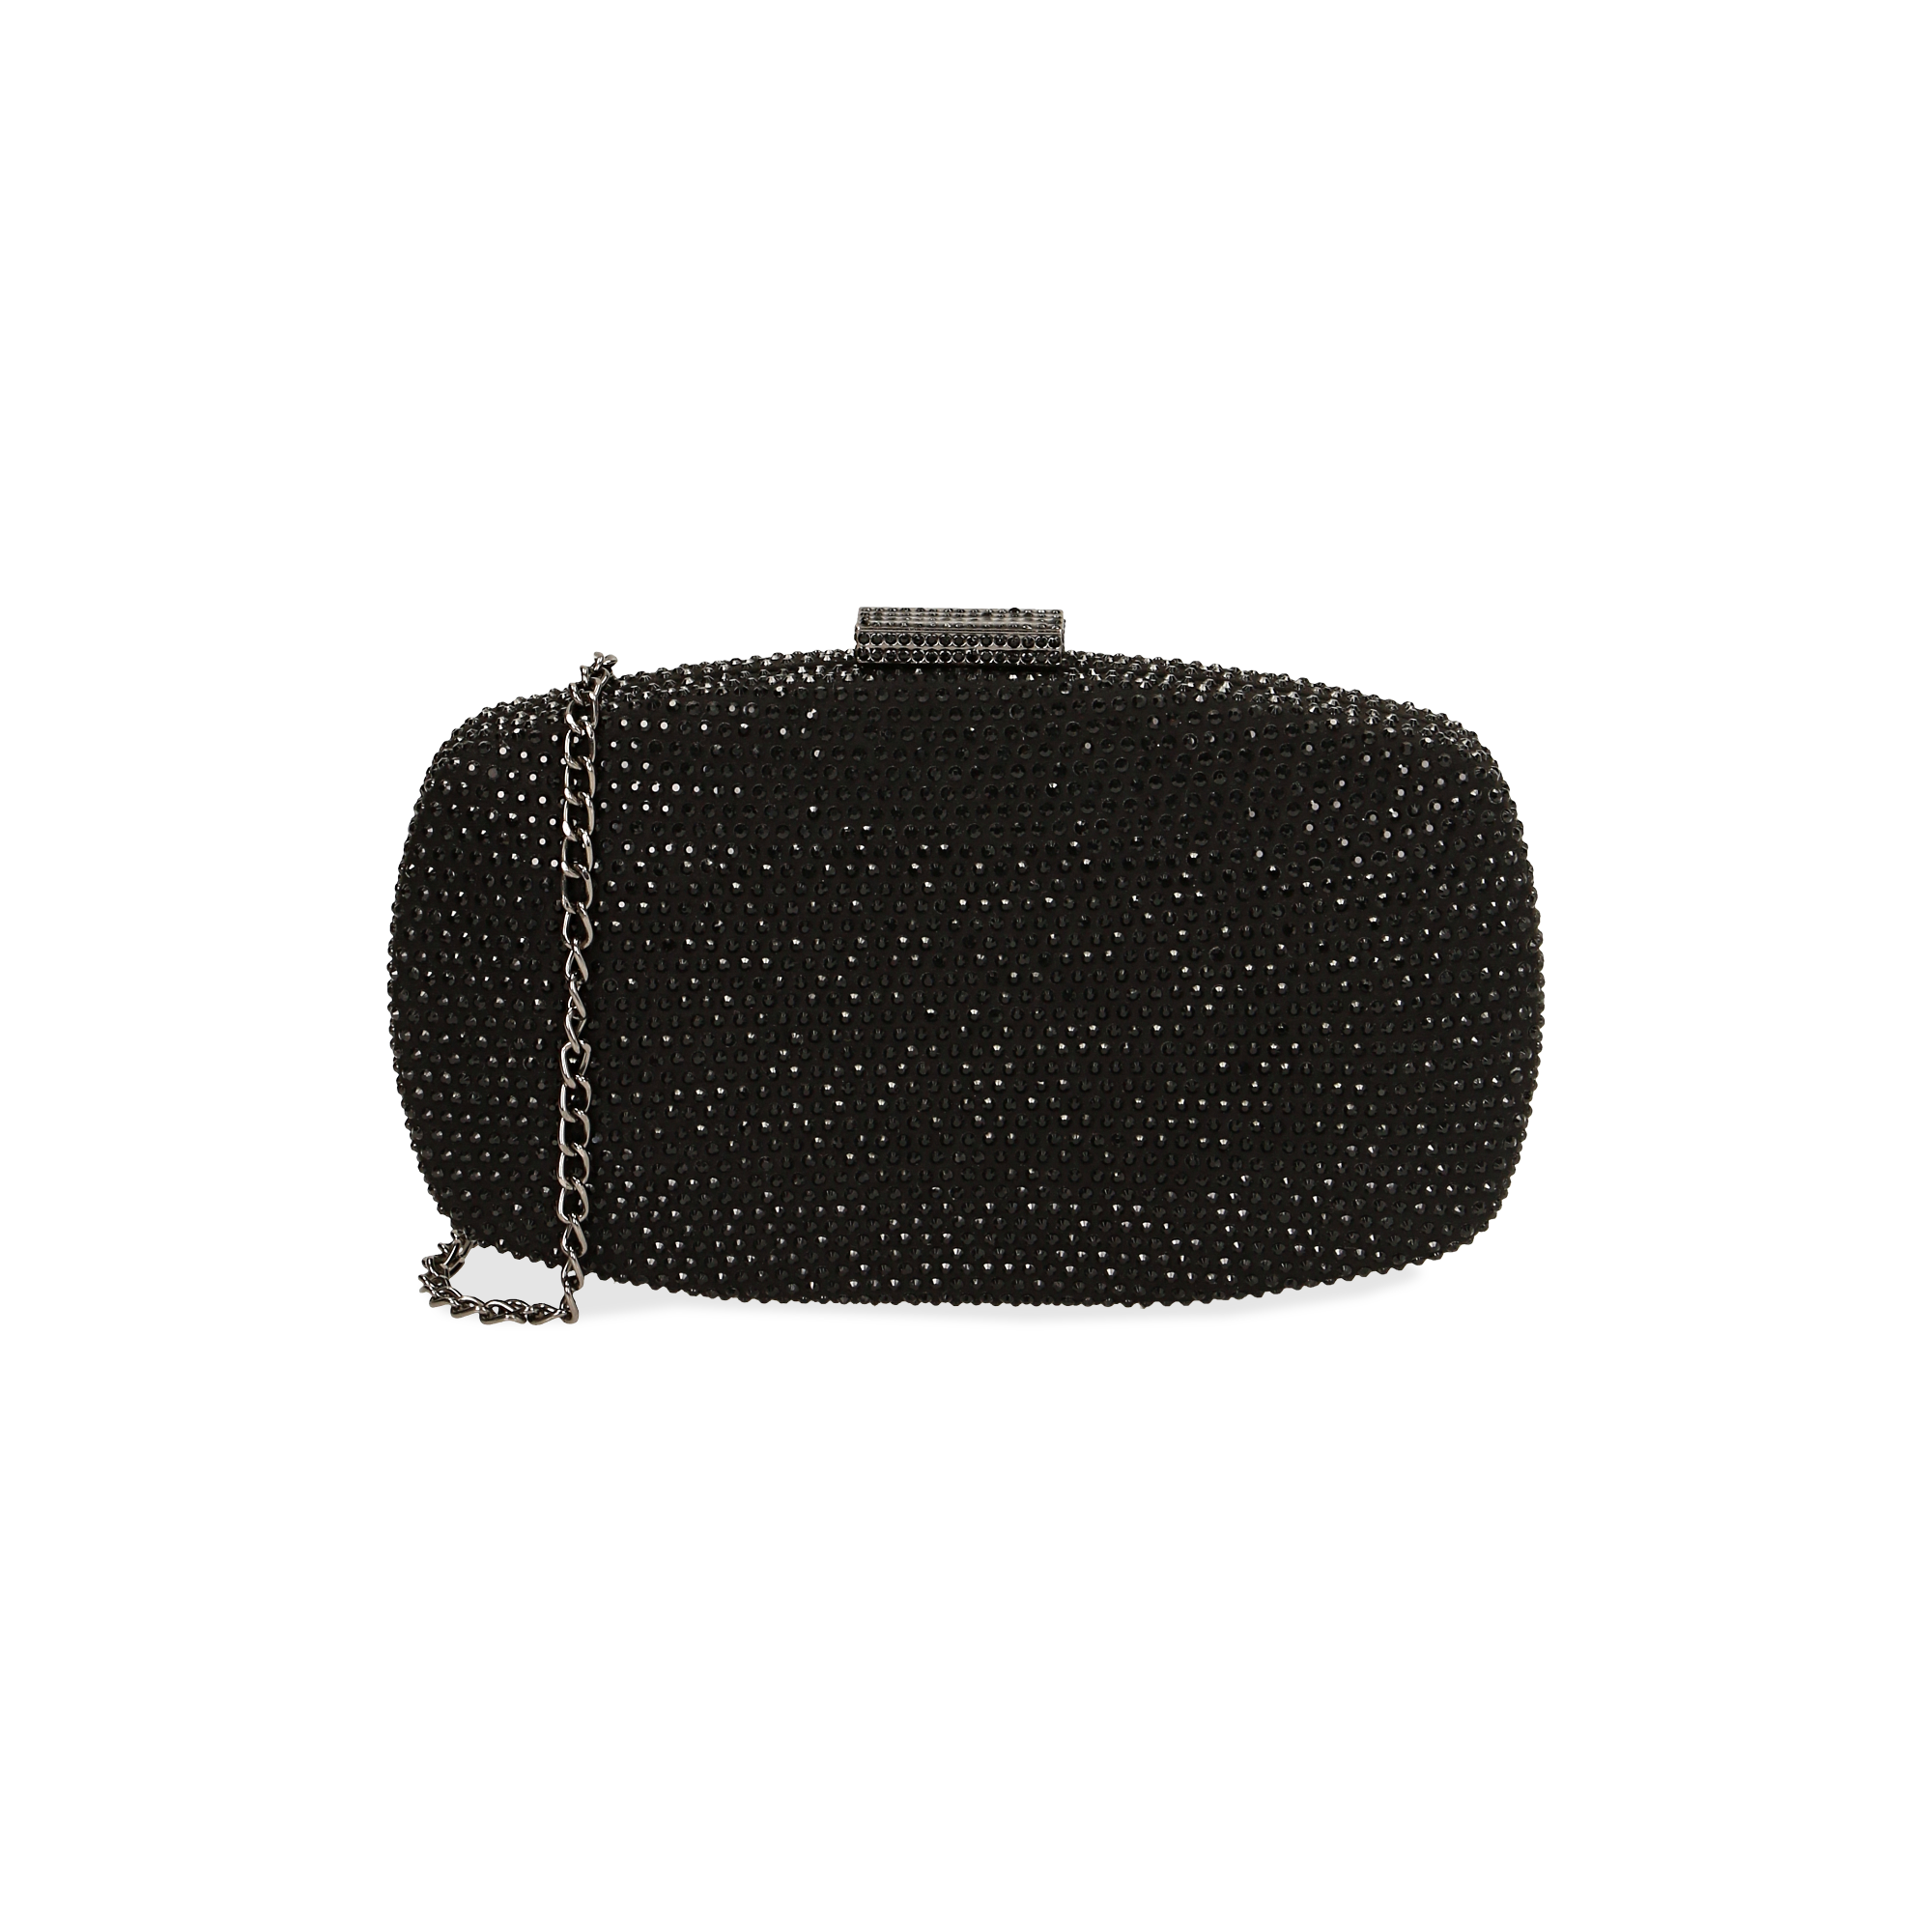 Clutch joya en microfibra color negro